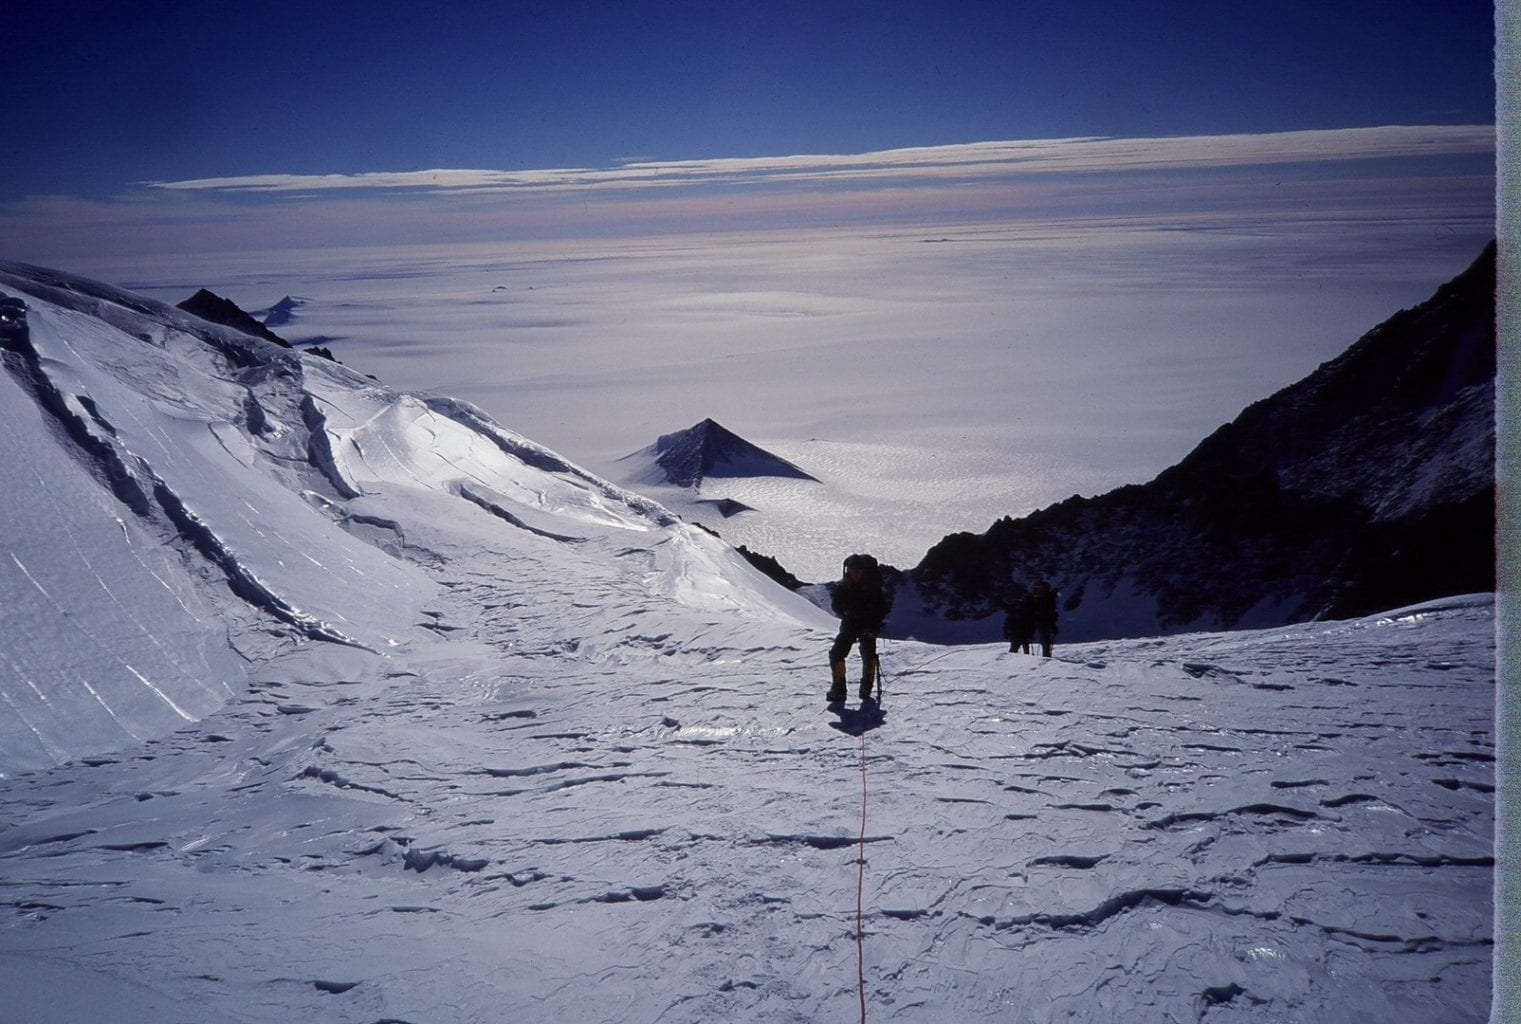 The most famous of the alleged pyramids in Antarctica photographed during one of the expeditions. Credit: Mountainguides.com